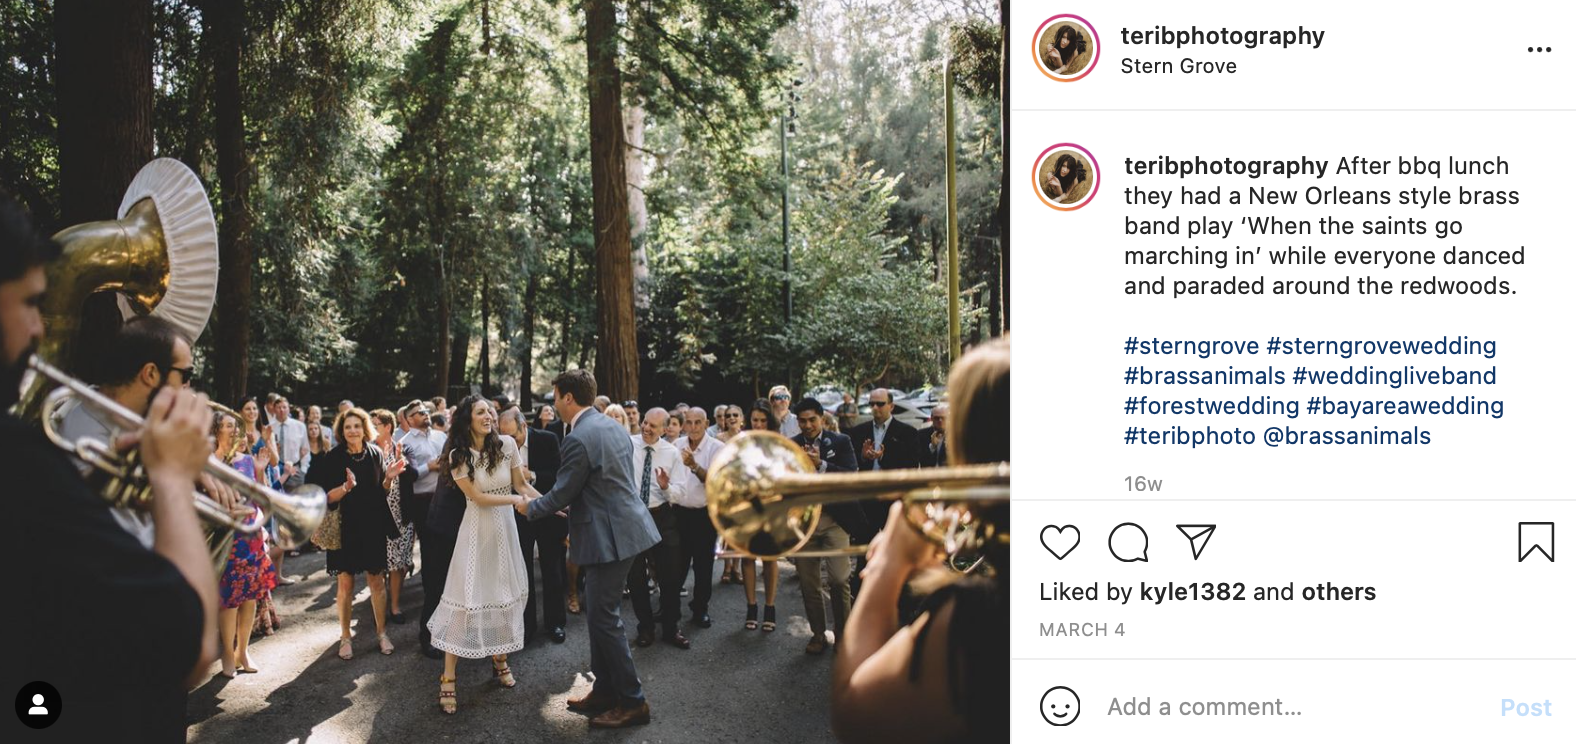 a bride and groom dance outdoors to live music